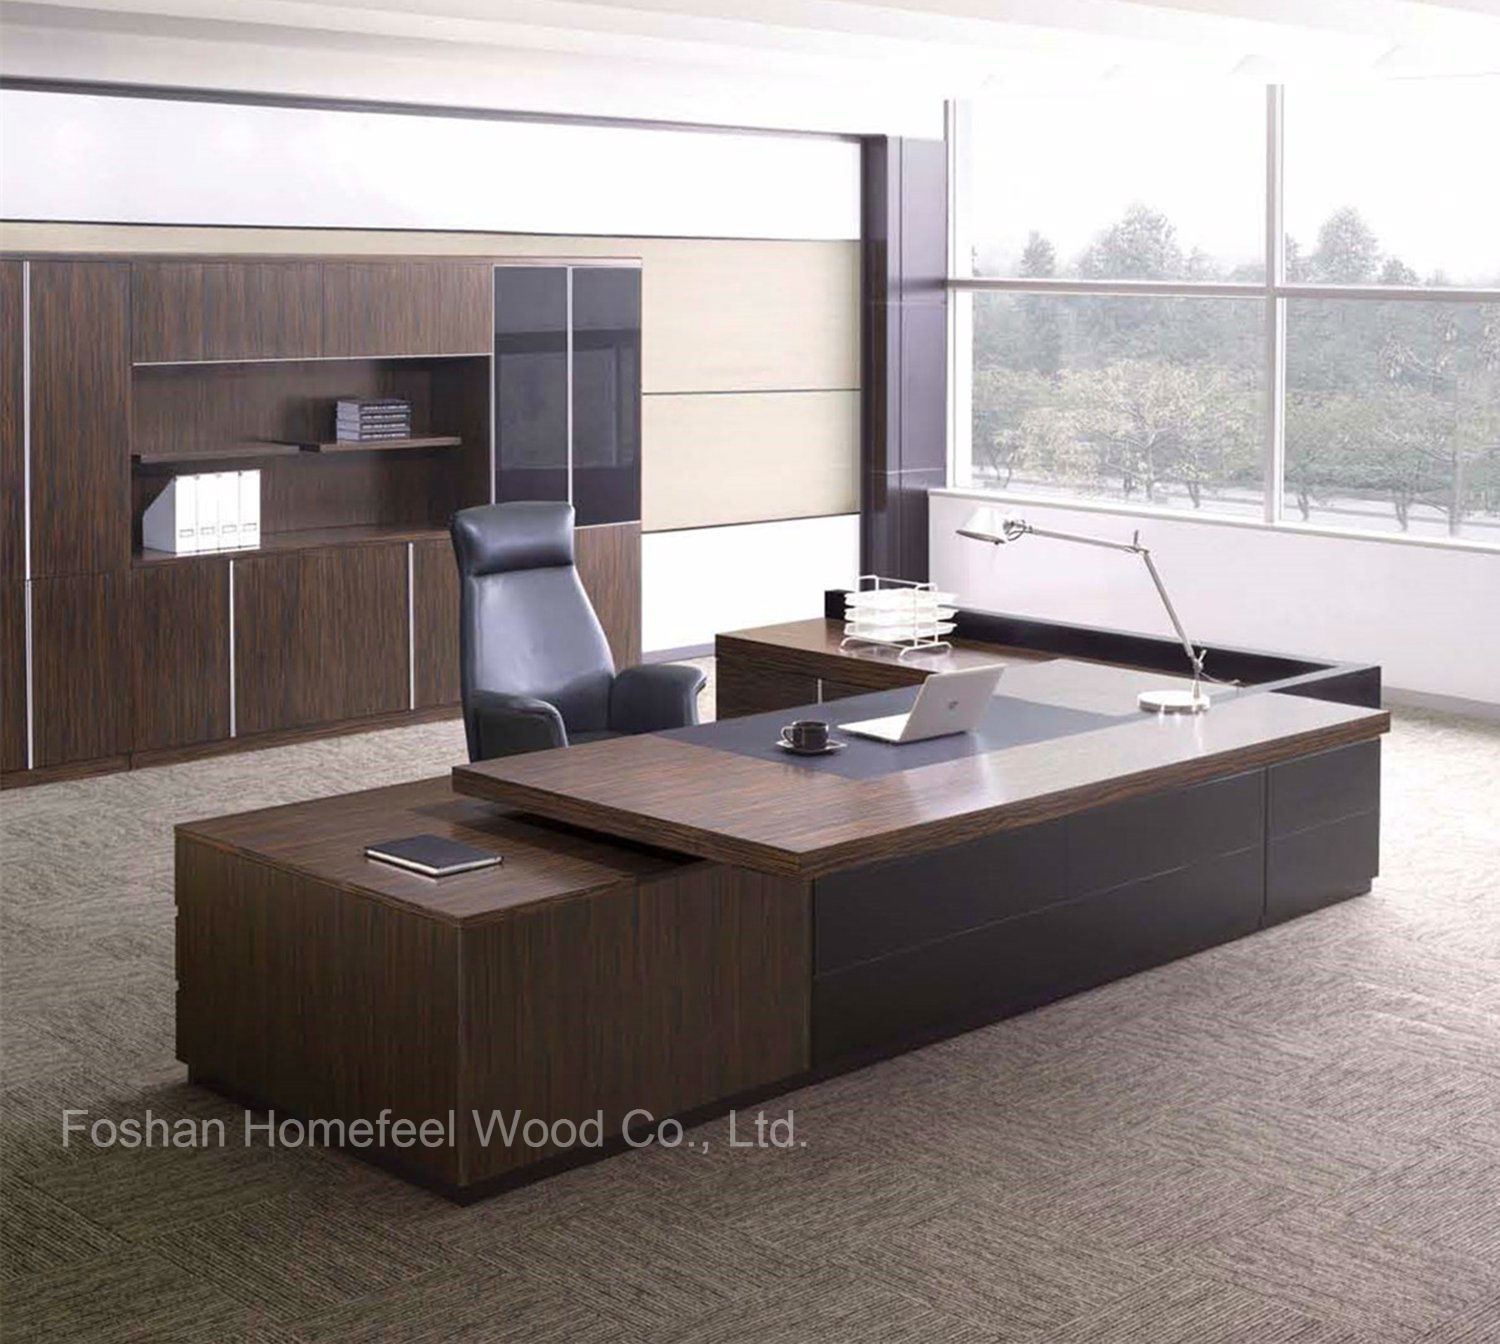 Office Couches For Sale: China Modern Wooden Office Furniture Desk For Sale